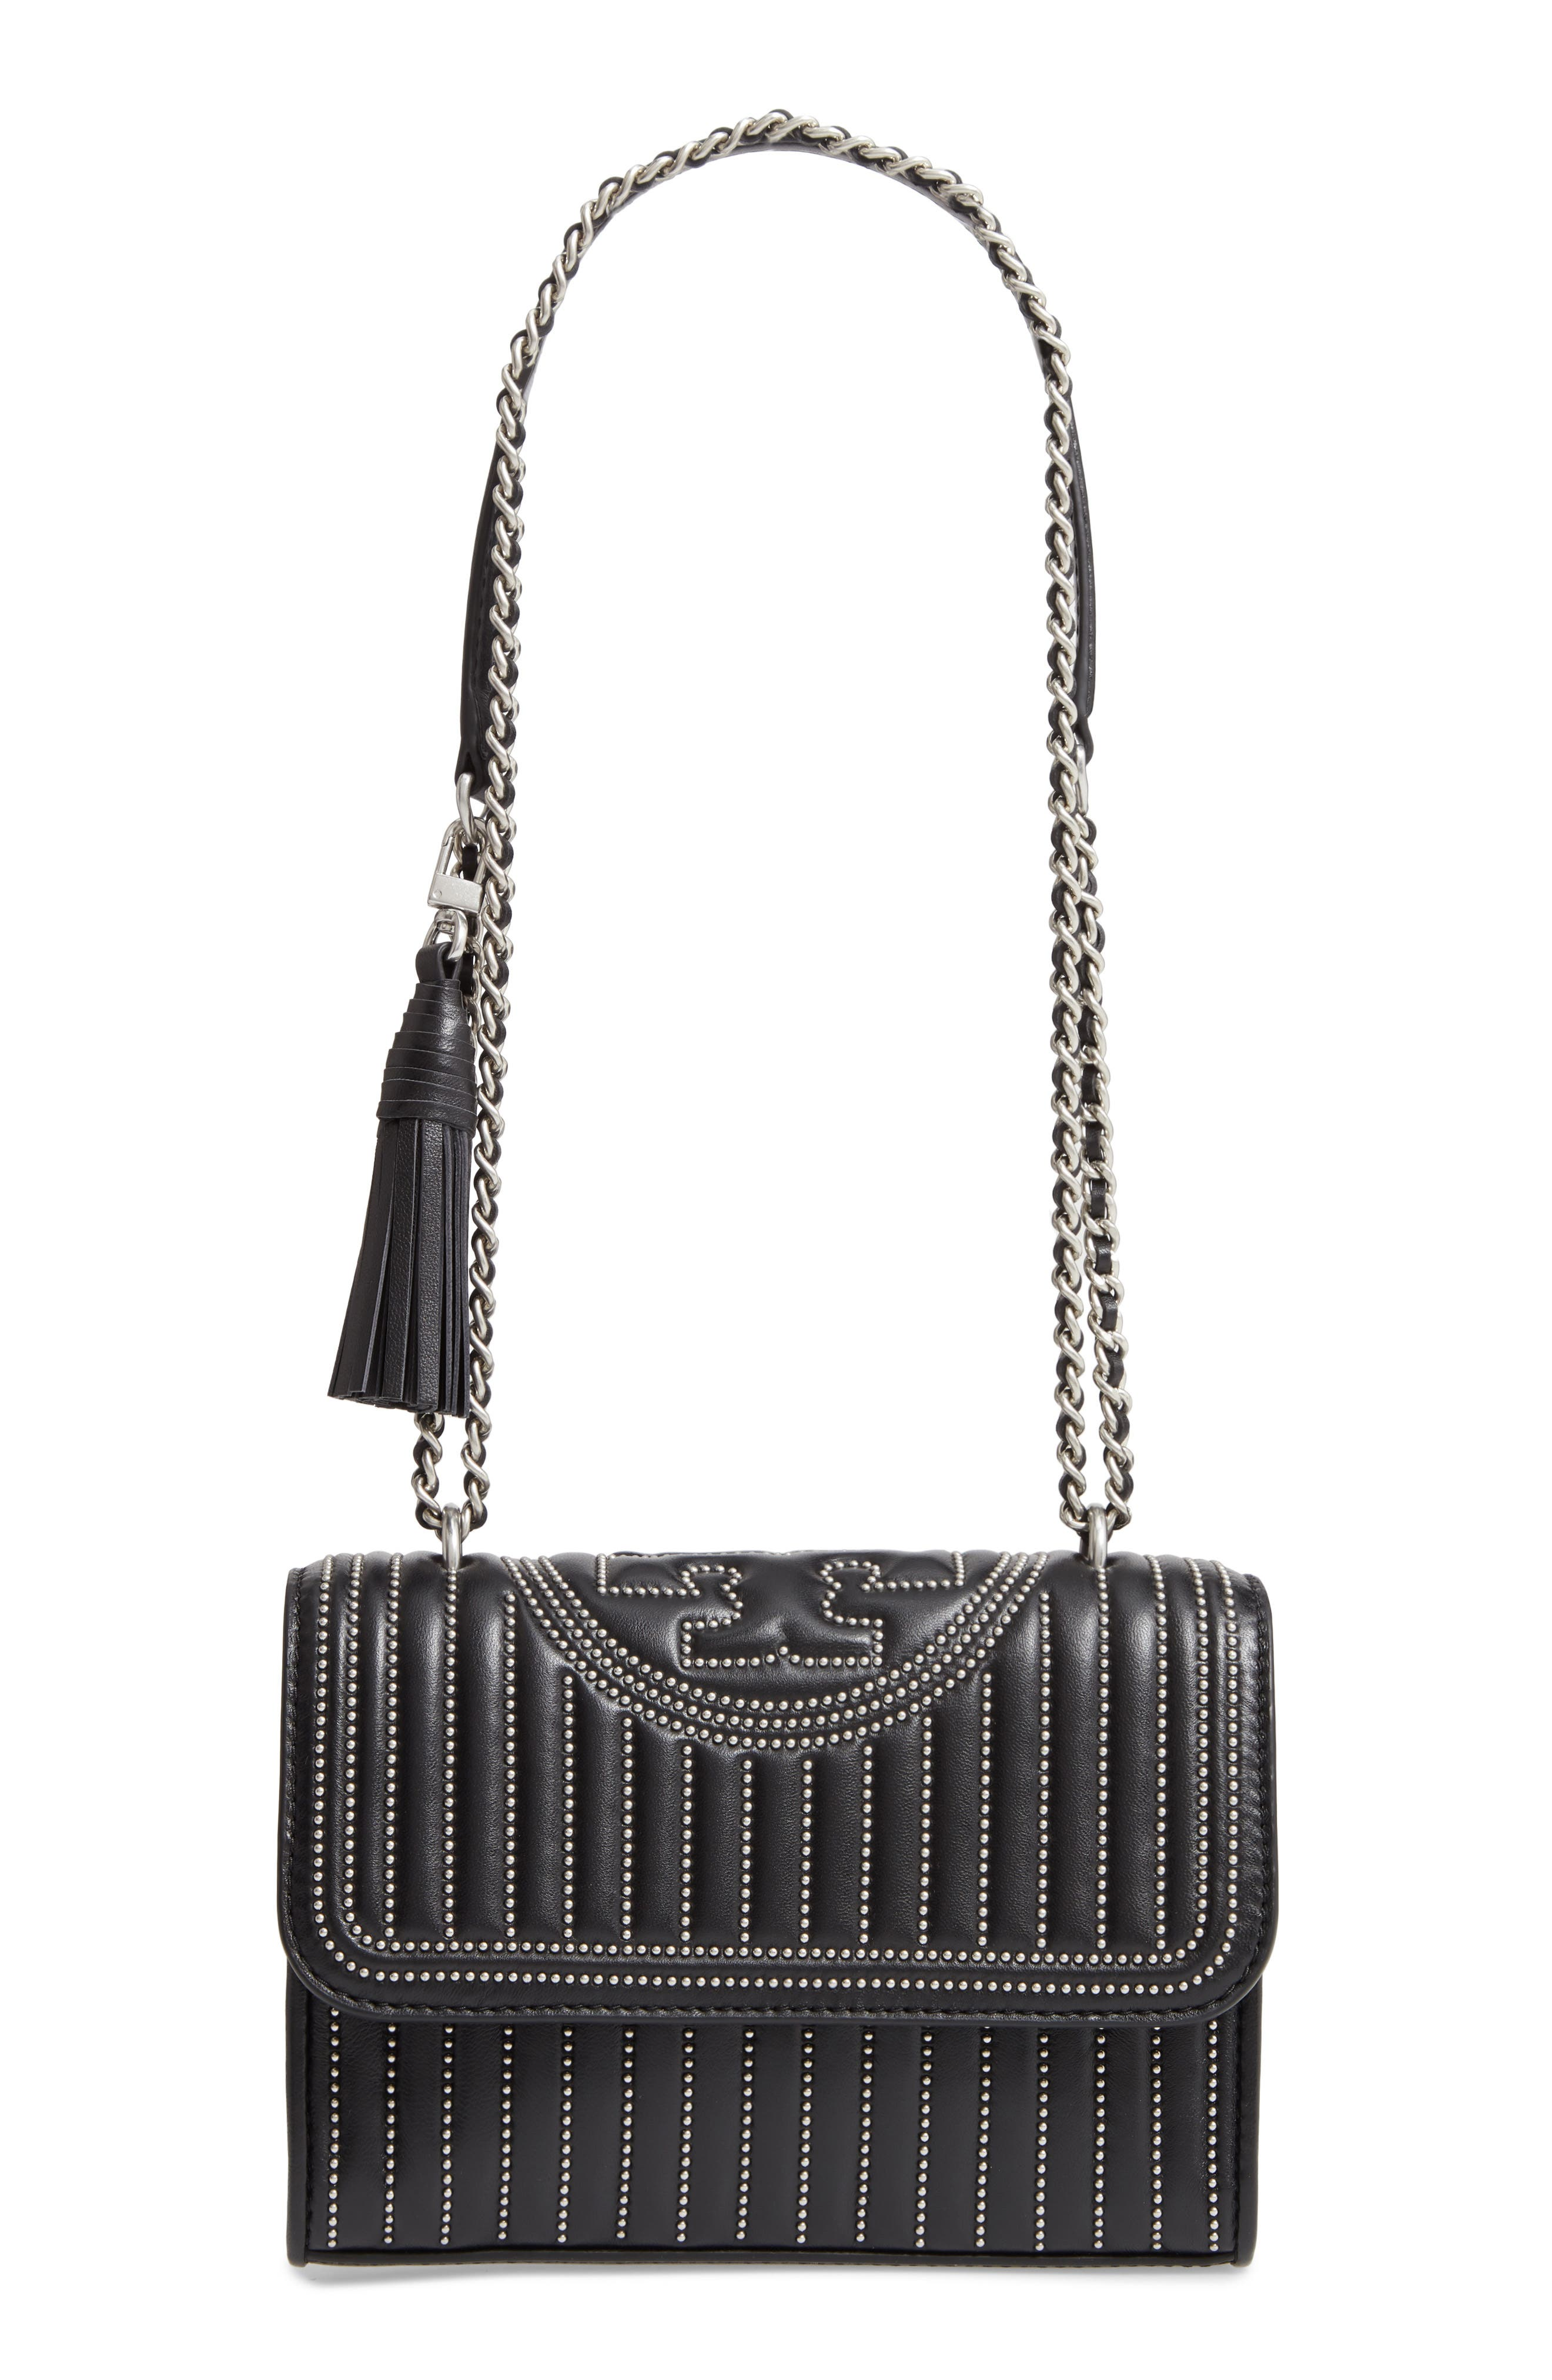 TORY BURCH Small Fleming Studded Leather Convertible Shoulder Bag, Main, color, BLACK / SILVER